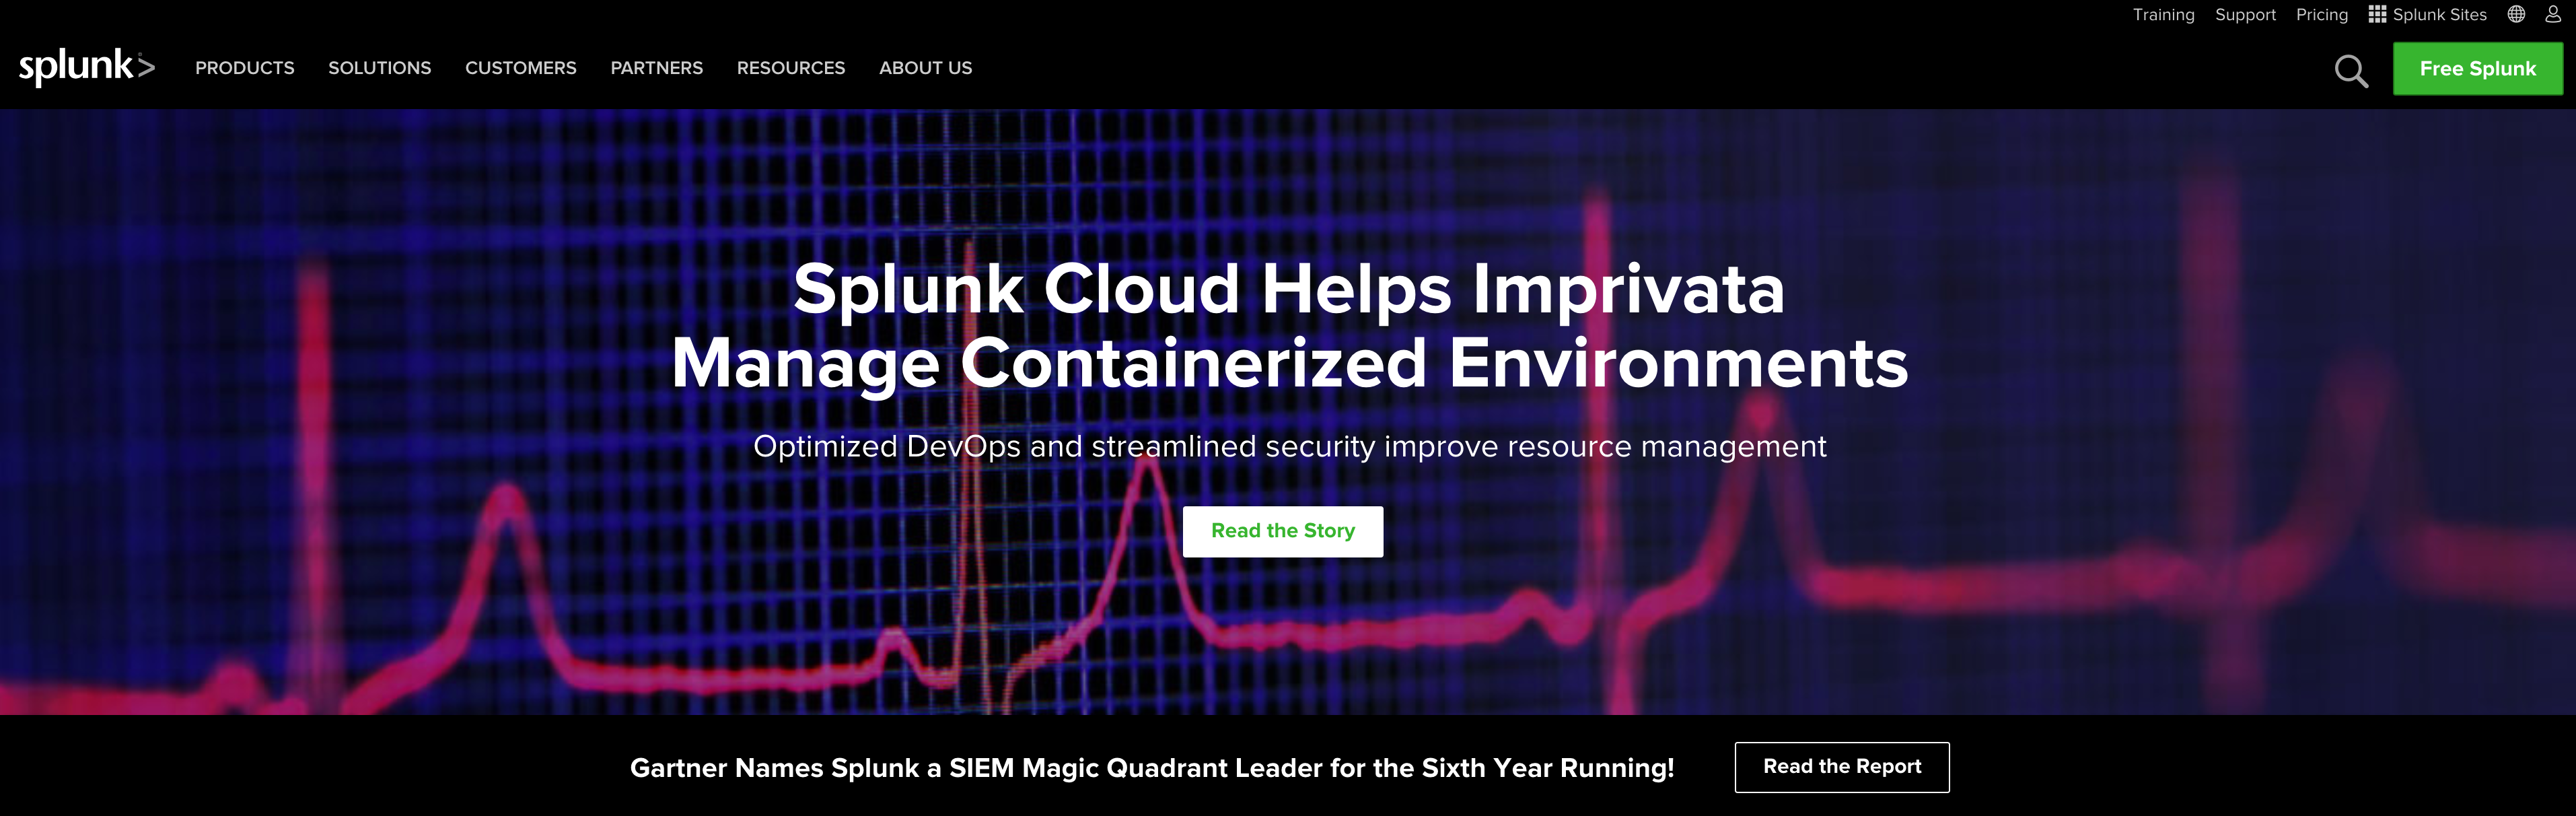 Splunk Homepage Screenshot